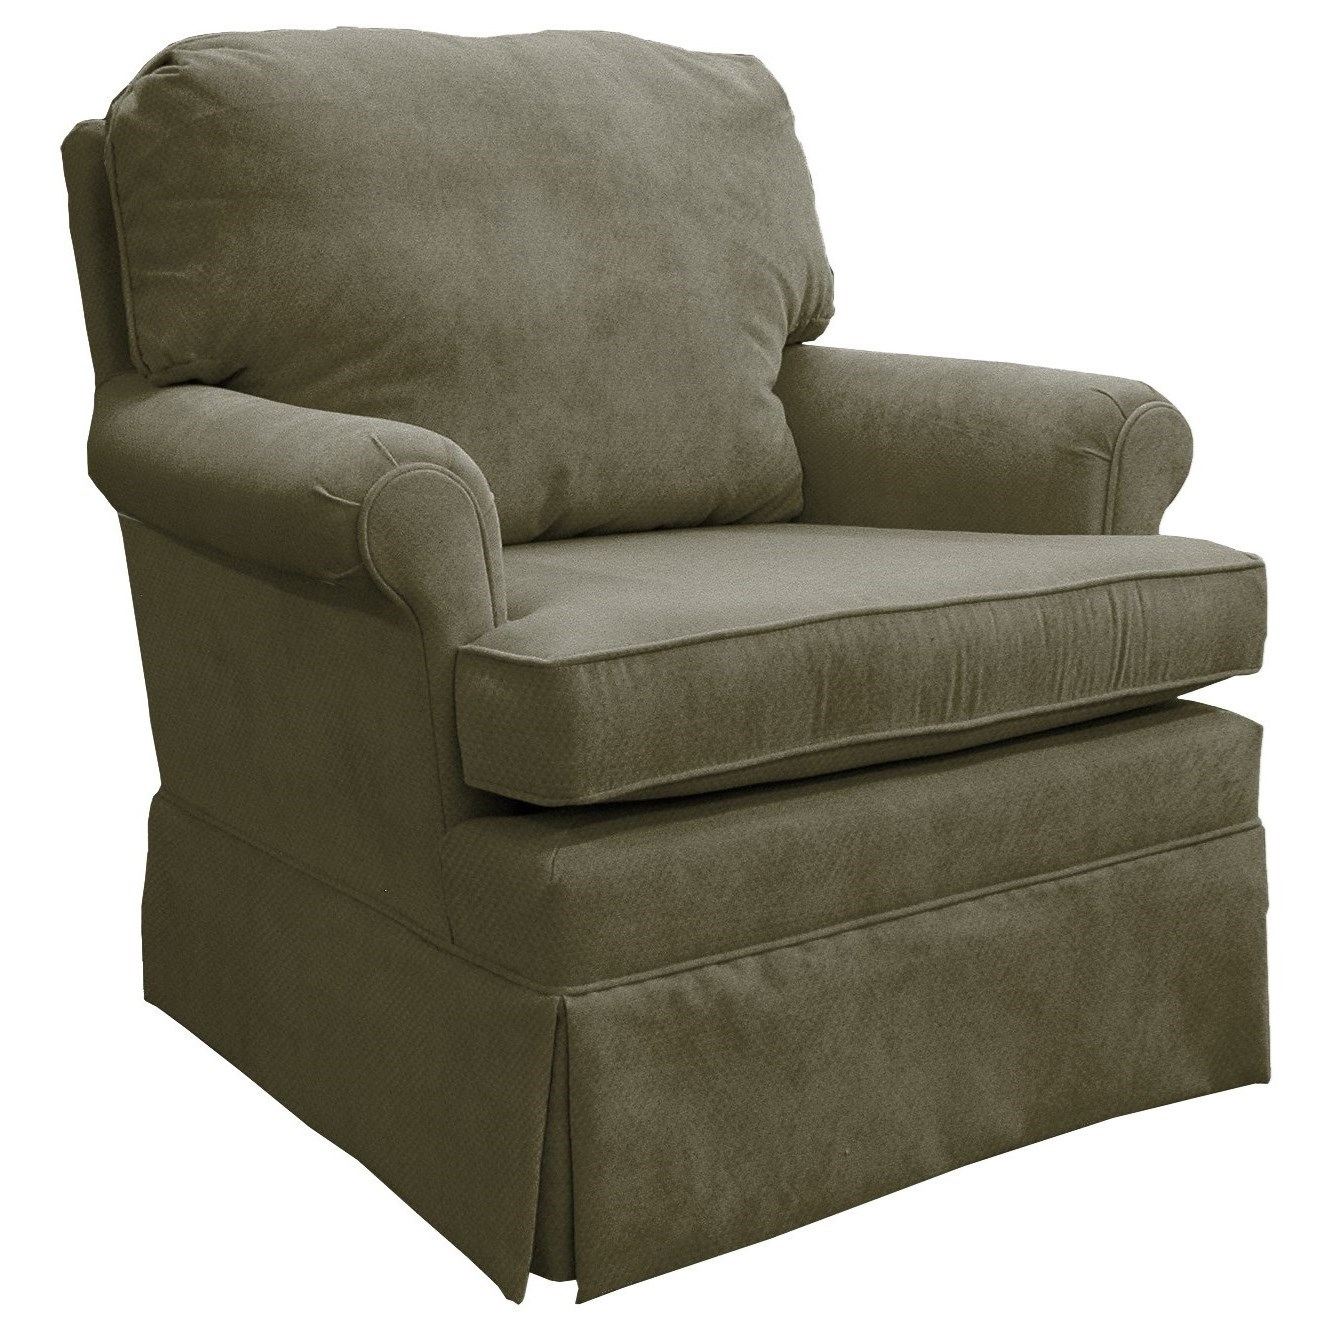 Small upholstered swivel rocking chair best home for Best home furnishings